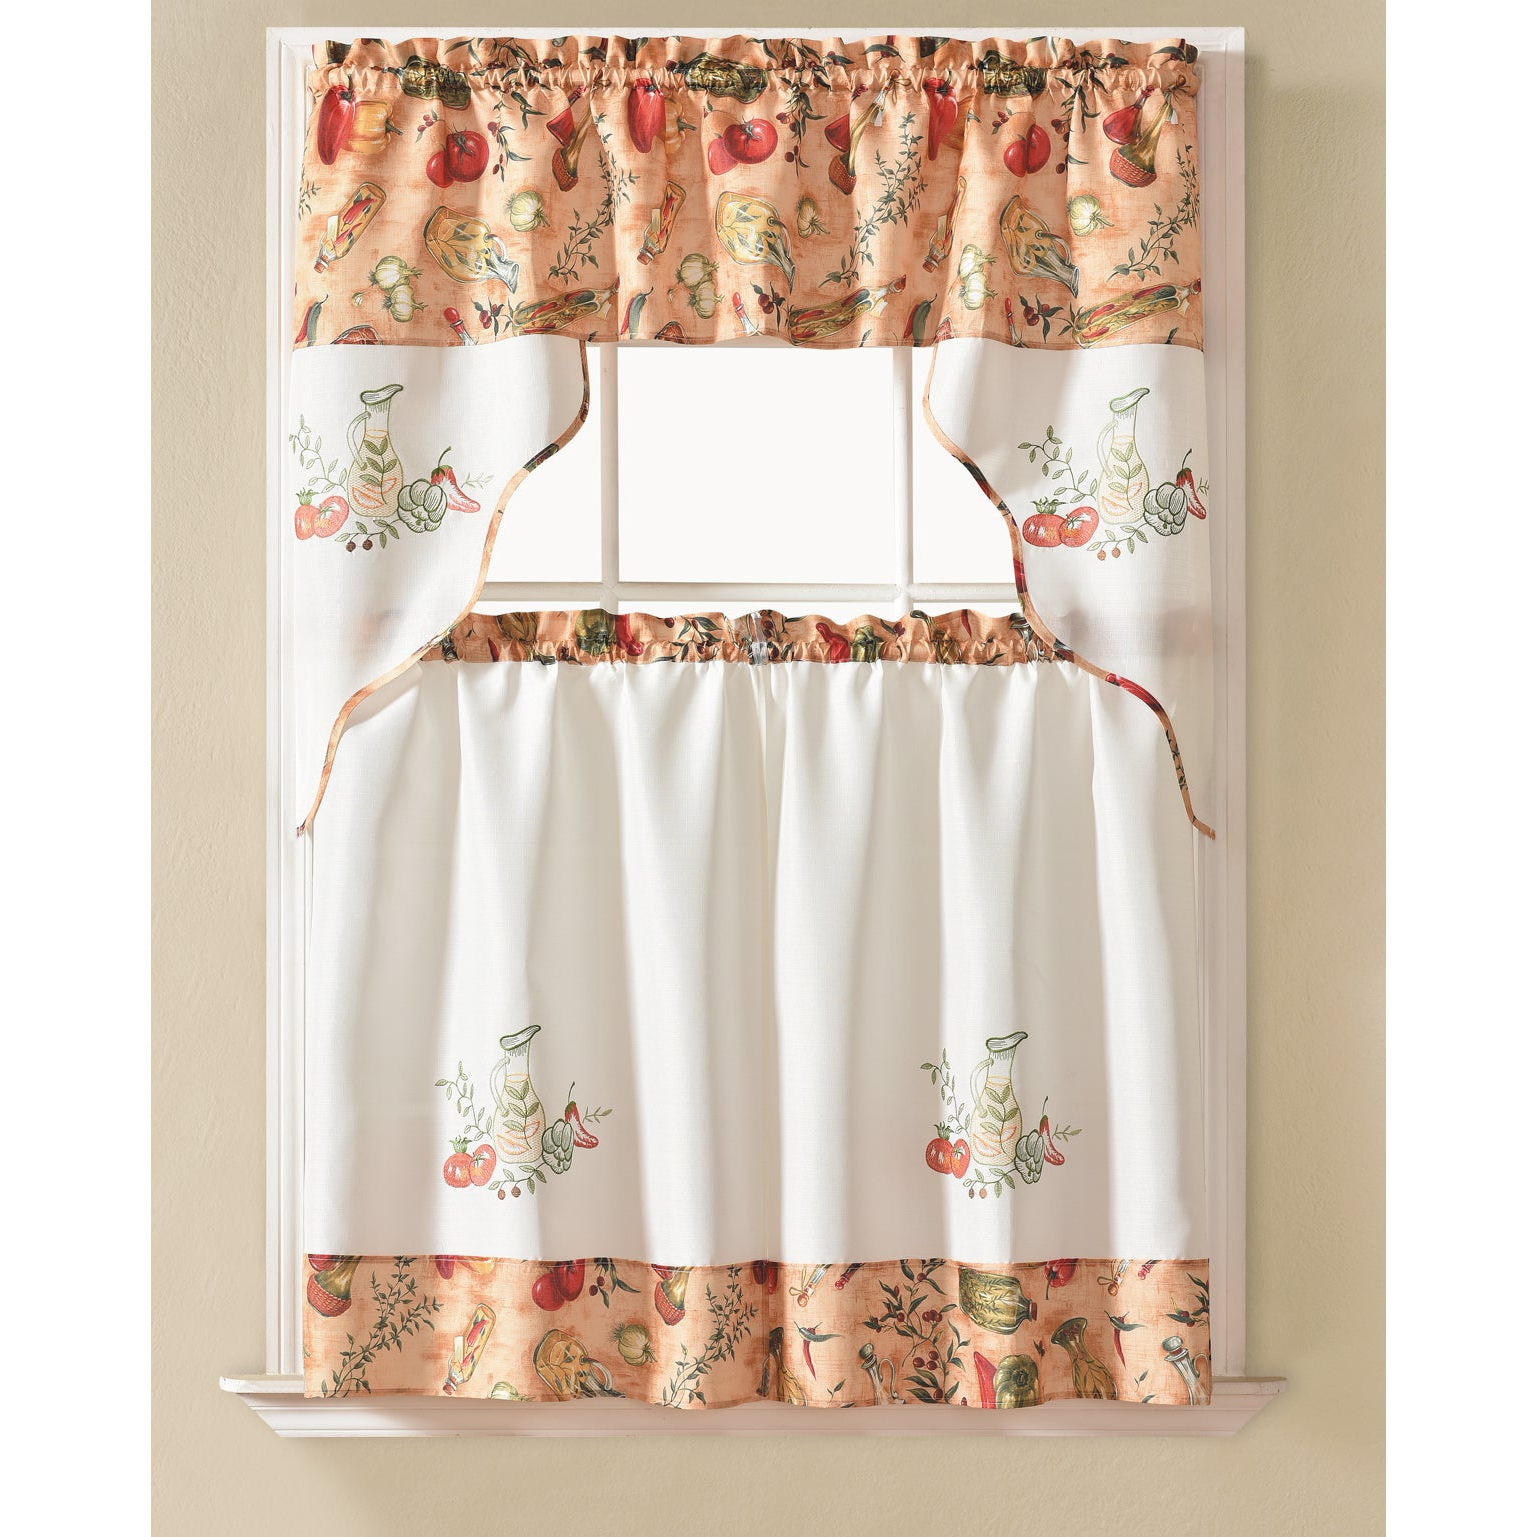 Fashionable Lemon Drop Tier And Valance Window Curtain Sets Pertaining To Rt Designers Collection Urban Embroidered Tier And Valance Kitchen Curtain Tier Set (View 10 of 20)